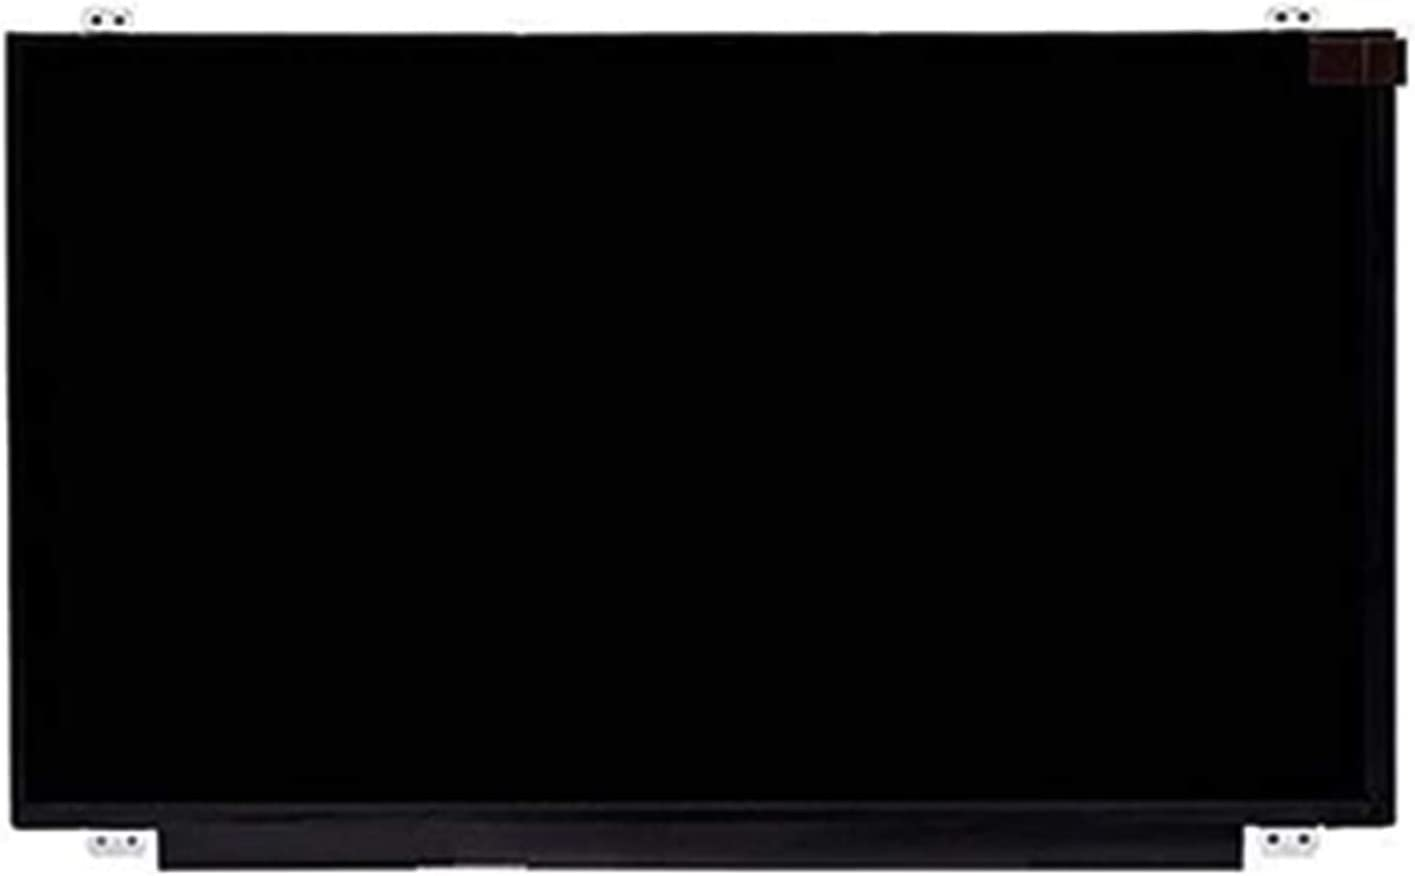 """17.3"""" UHD 4K 3840x2160 Monitor LCD Screen Replacement Repair Glass for Acer Predator 17 G9-793-79D9 G9-793-79V5 Gaming Laptop"""